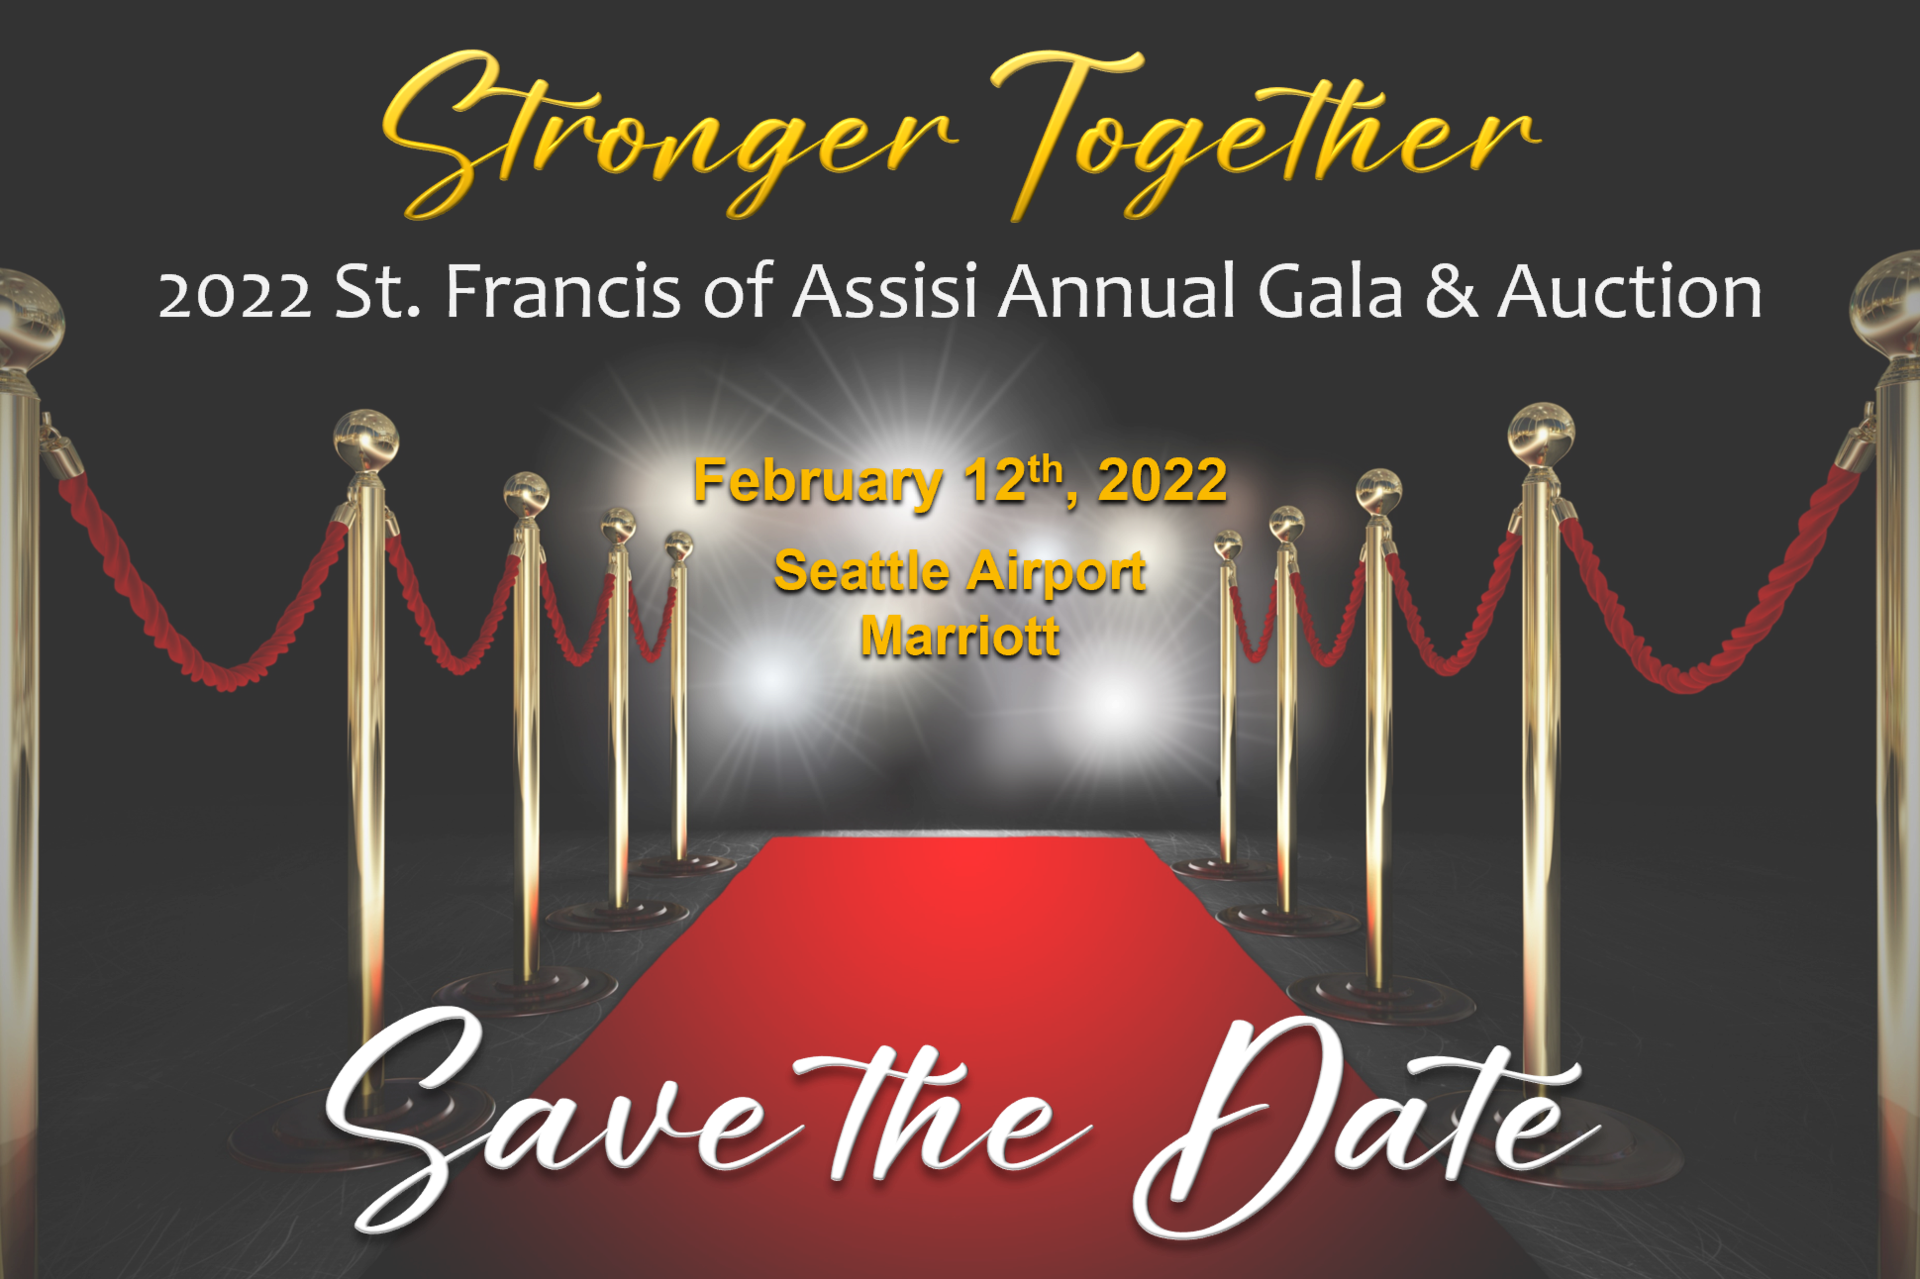 Red Carpet and lights St. Francis of Assisi Annual Gala & Auction